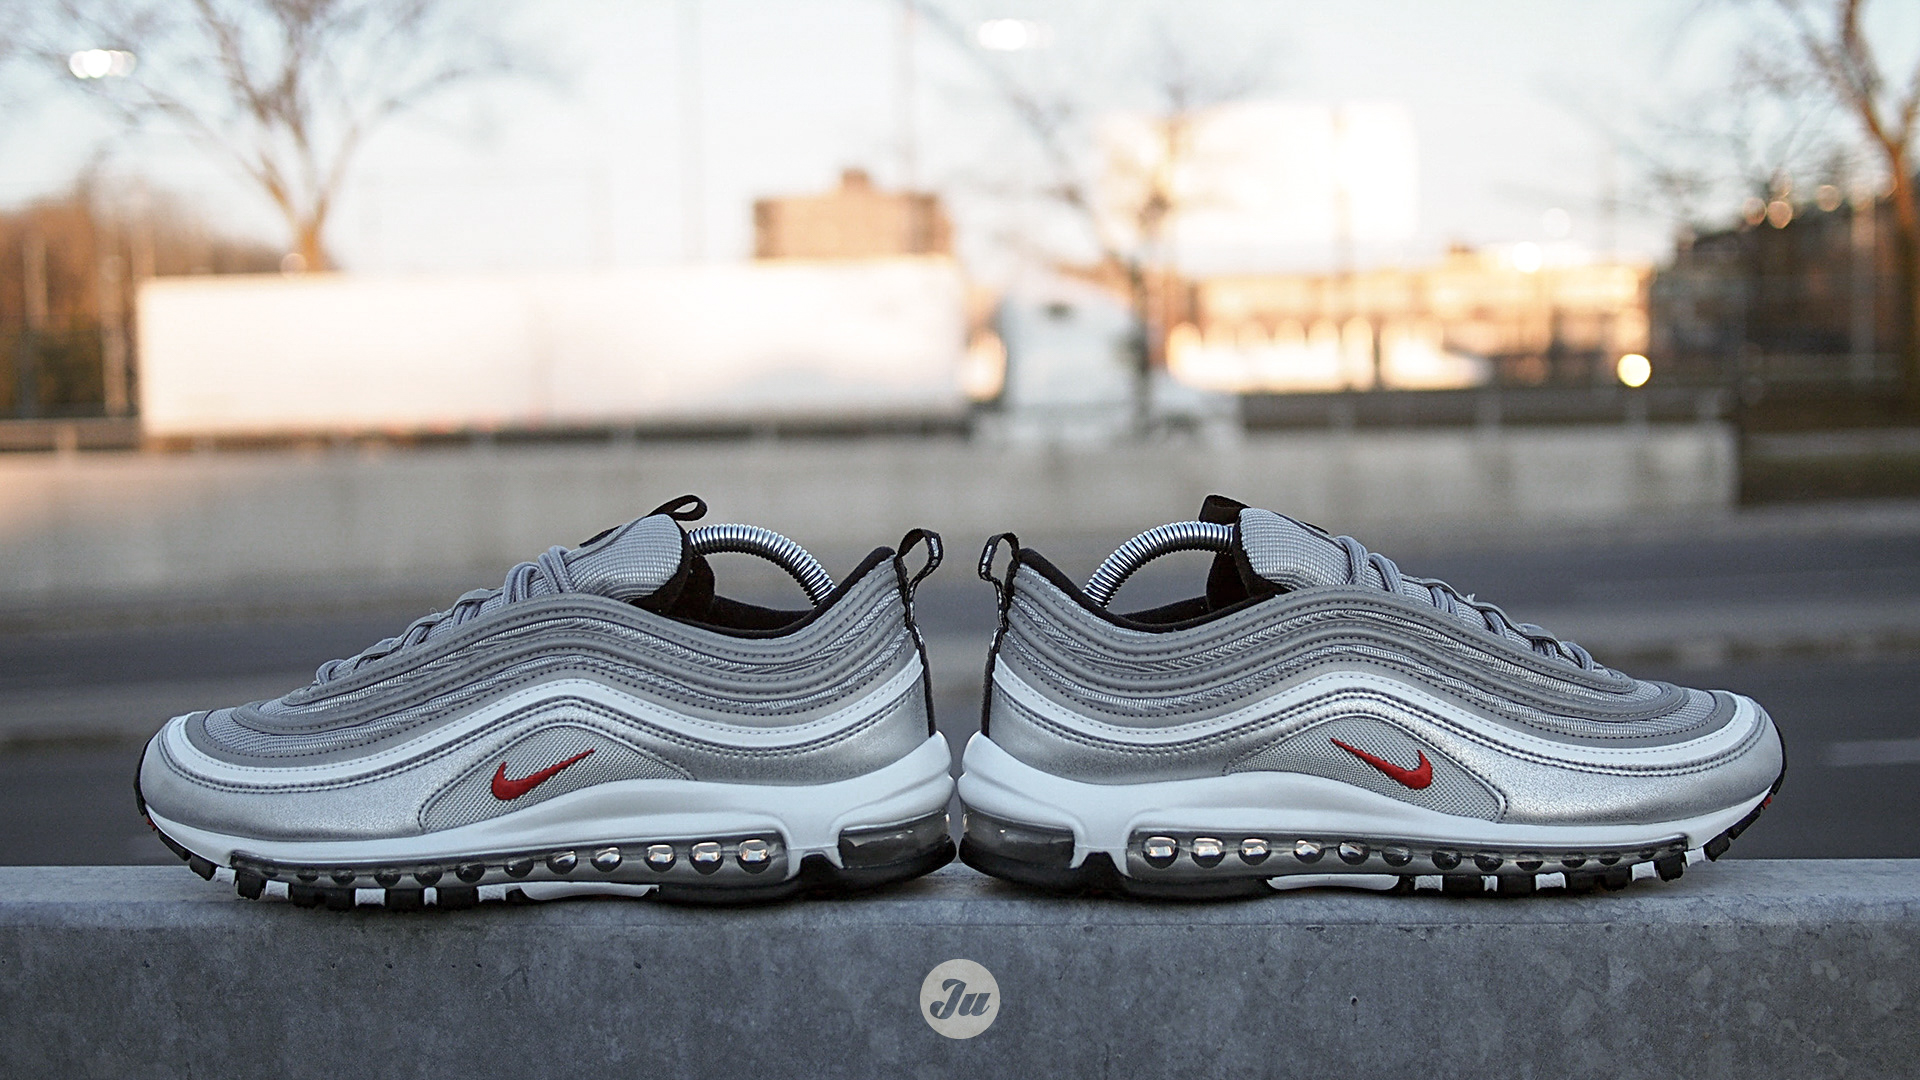 Review w on feet video] It's the Air Max 97 OG QS